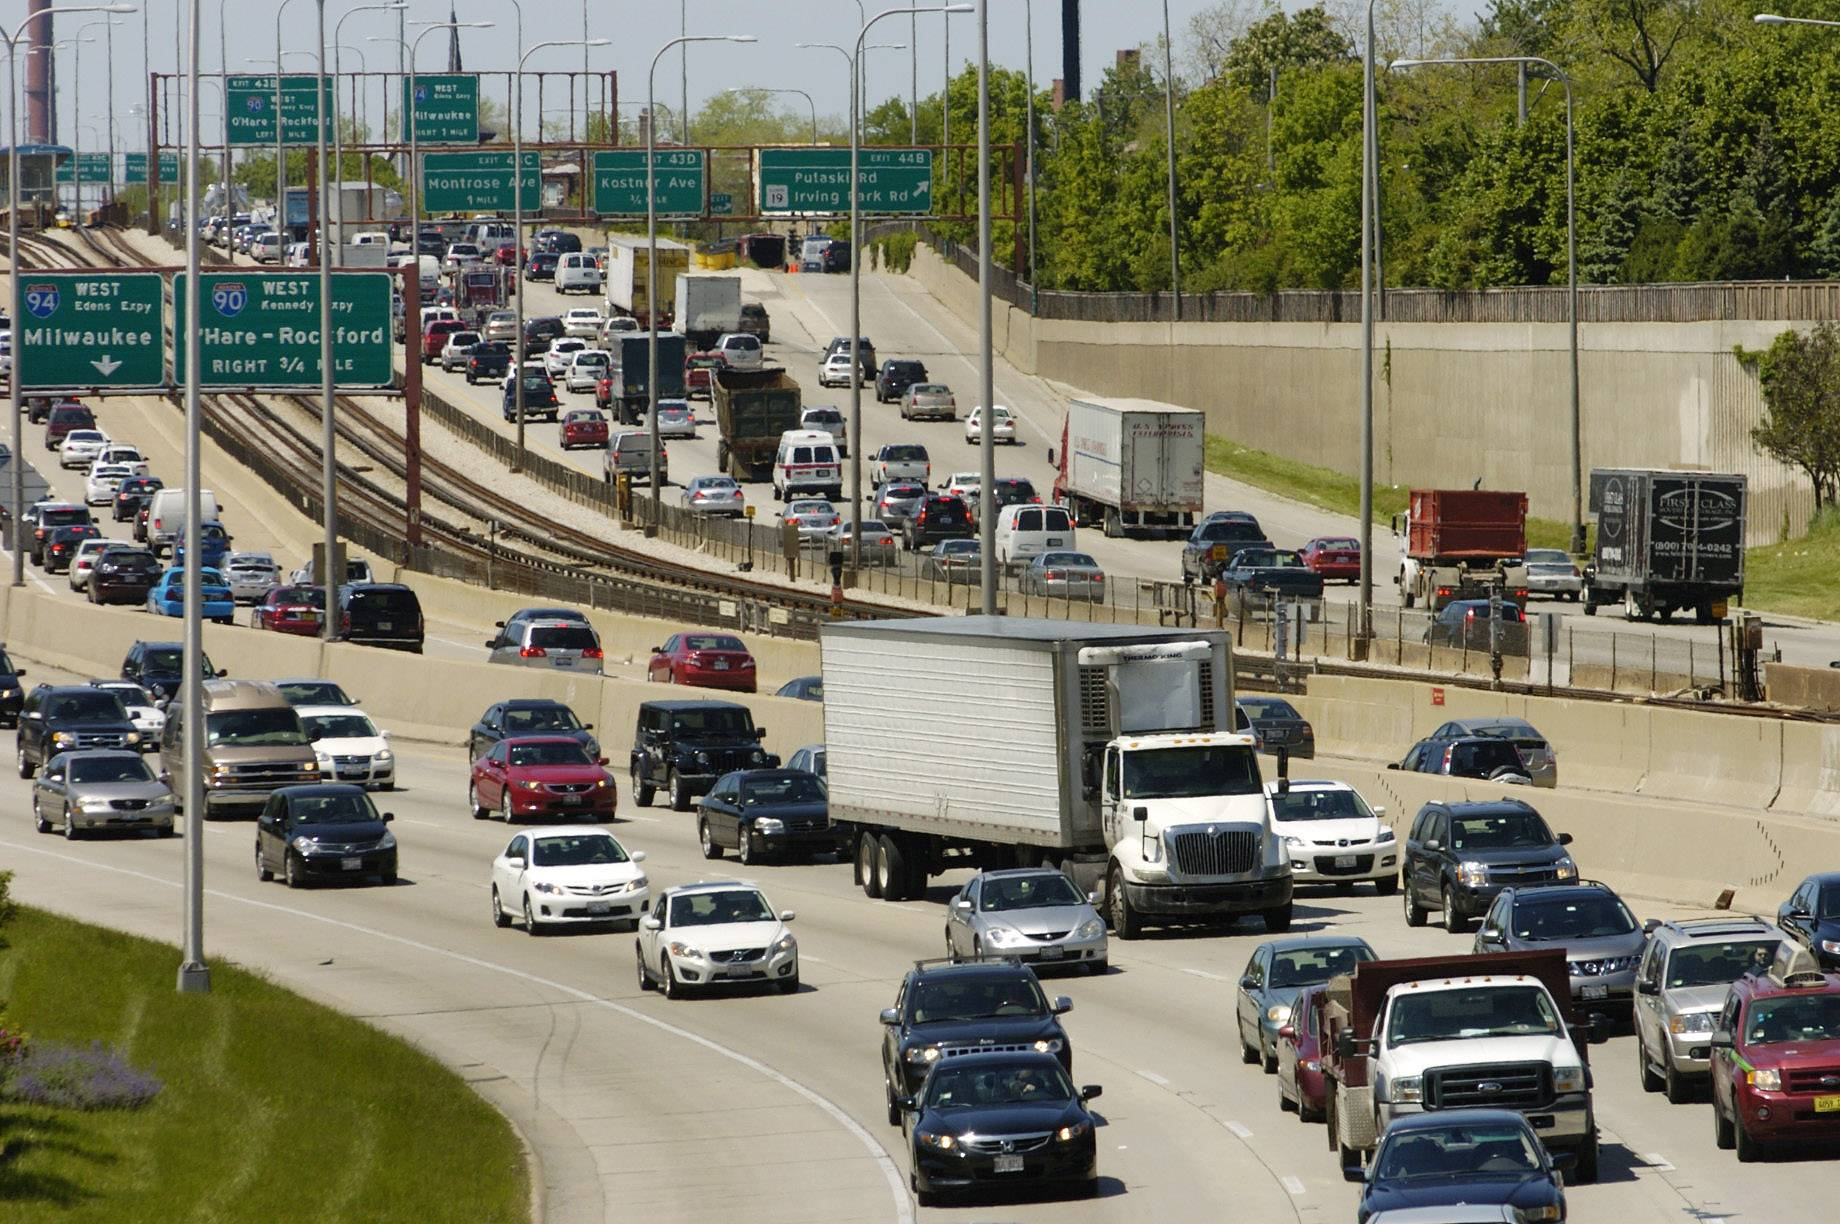 Bob Chwedyk/bchwedyk@dailyherald.com, May 2012Avoid the Kennedy Expressway near downtown for the next three weekends, officials warn.